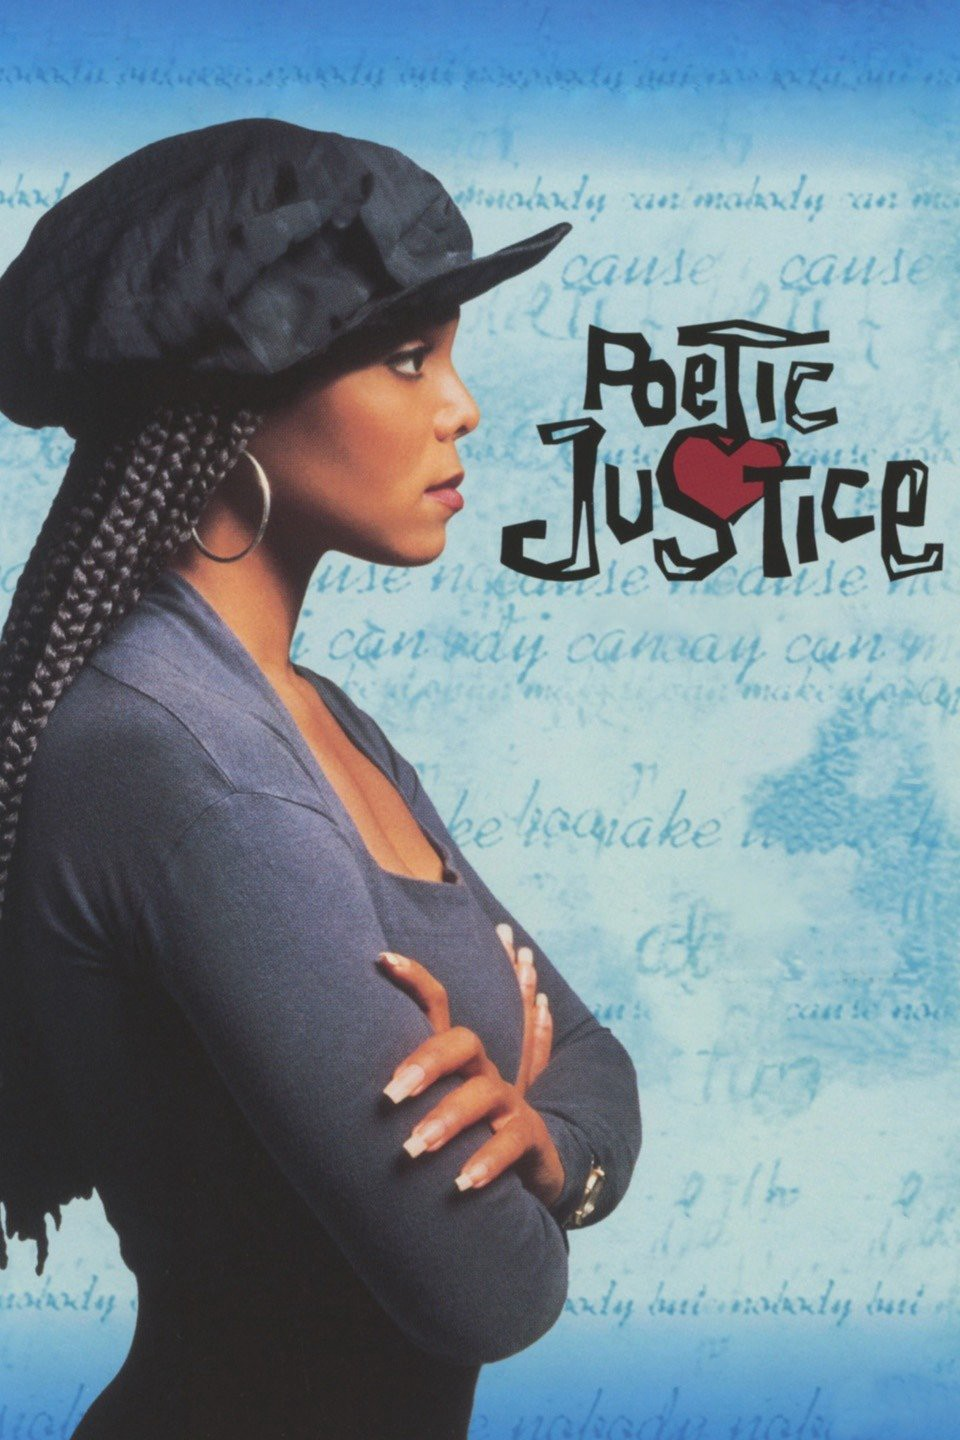 Poetic Justice, 1993 - In this classic black dramedy, Justice (Janet Jackson) and Lucky (Tupac Shakur) grow close while on a road trip with their friends, Iesha (Regina King) and Chicago (Joe Torry). Justice, a talented poet who is still grieving after the murder of her boyfriend, must decide if she is ready to once again open her heart to another man.